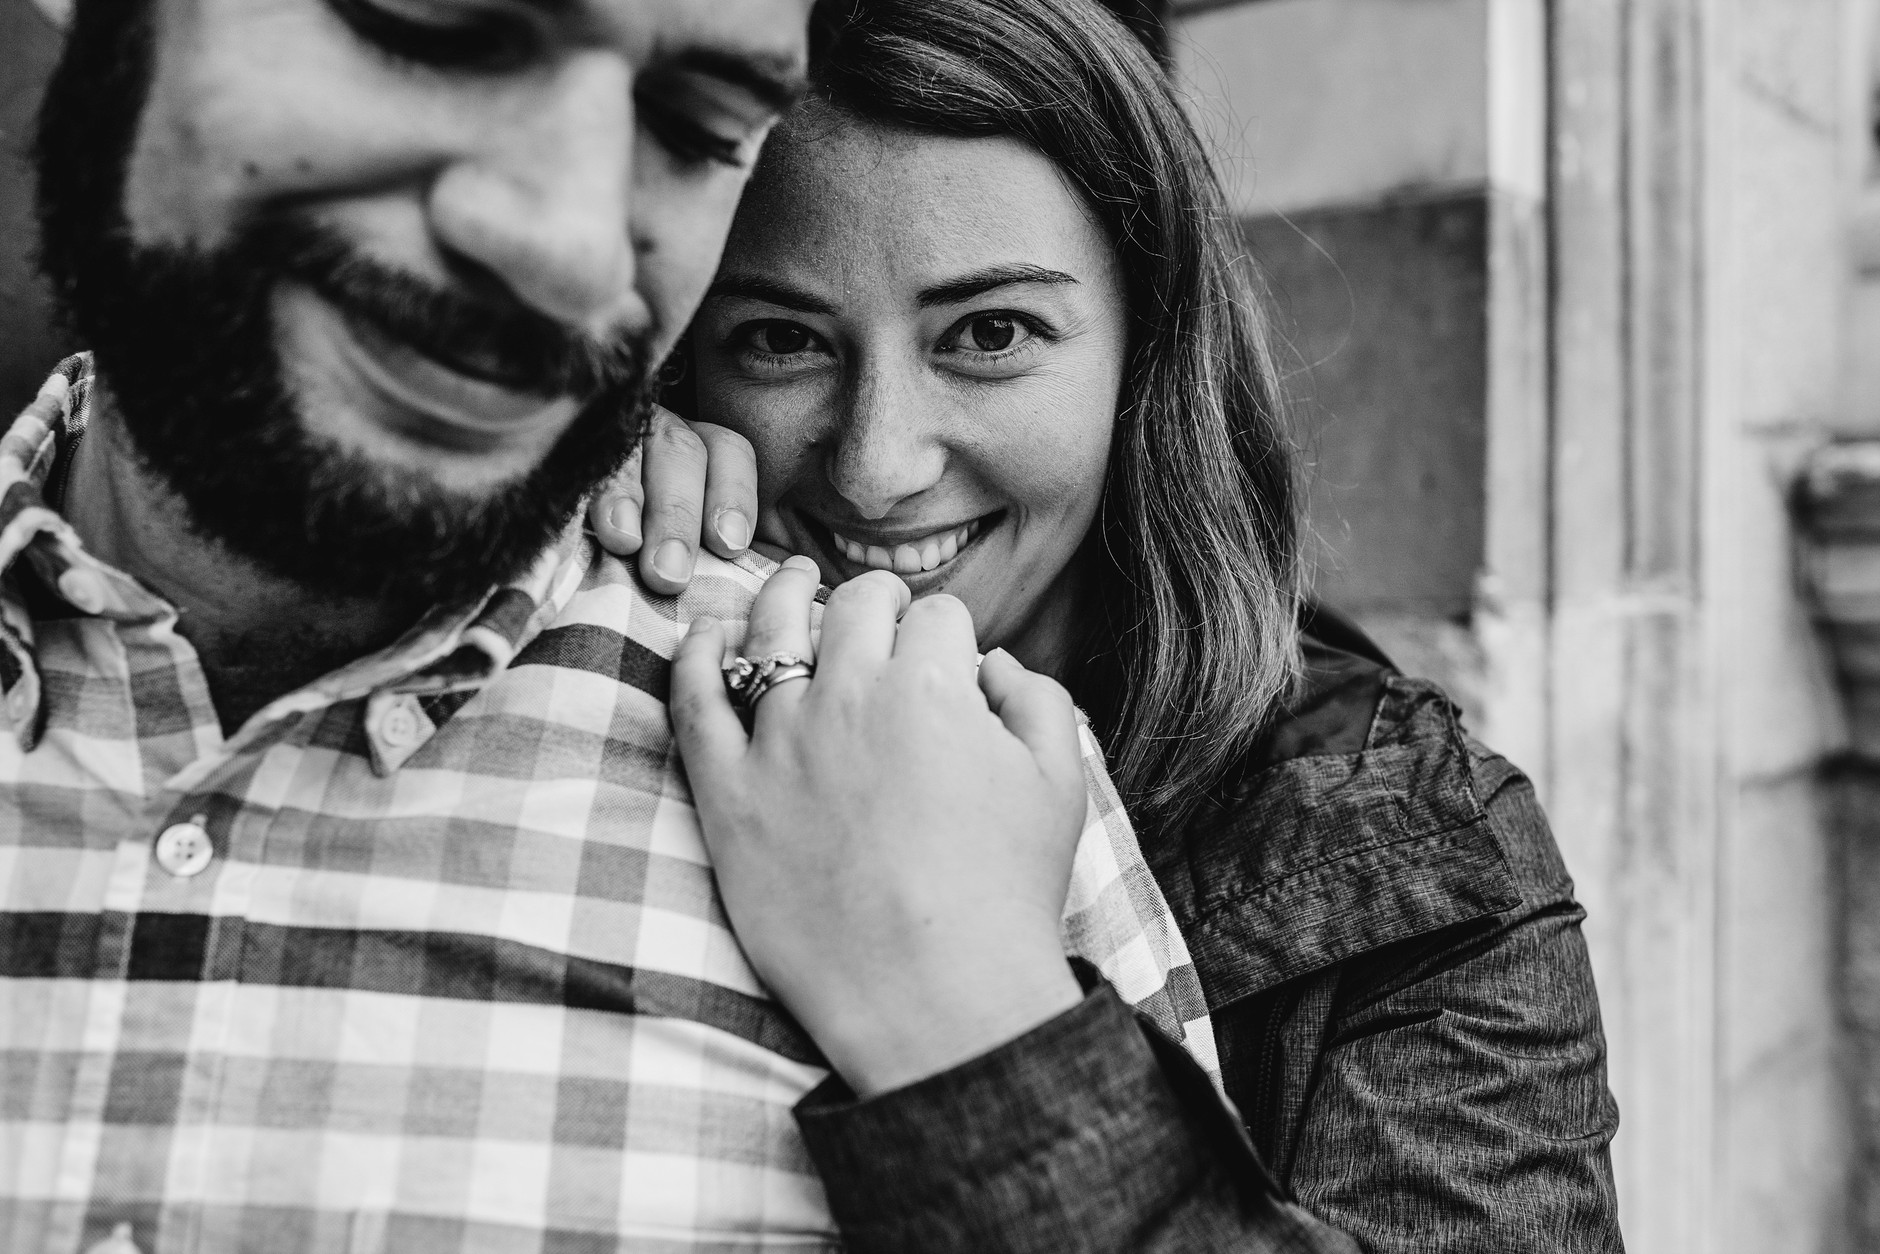 Portrait of couple with Laura looking at the camera, smiling, wedding ring